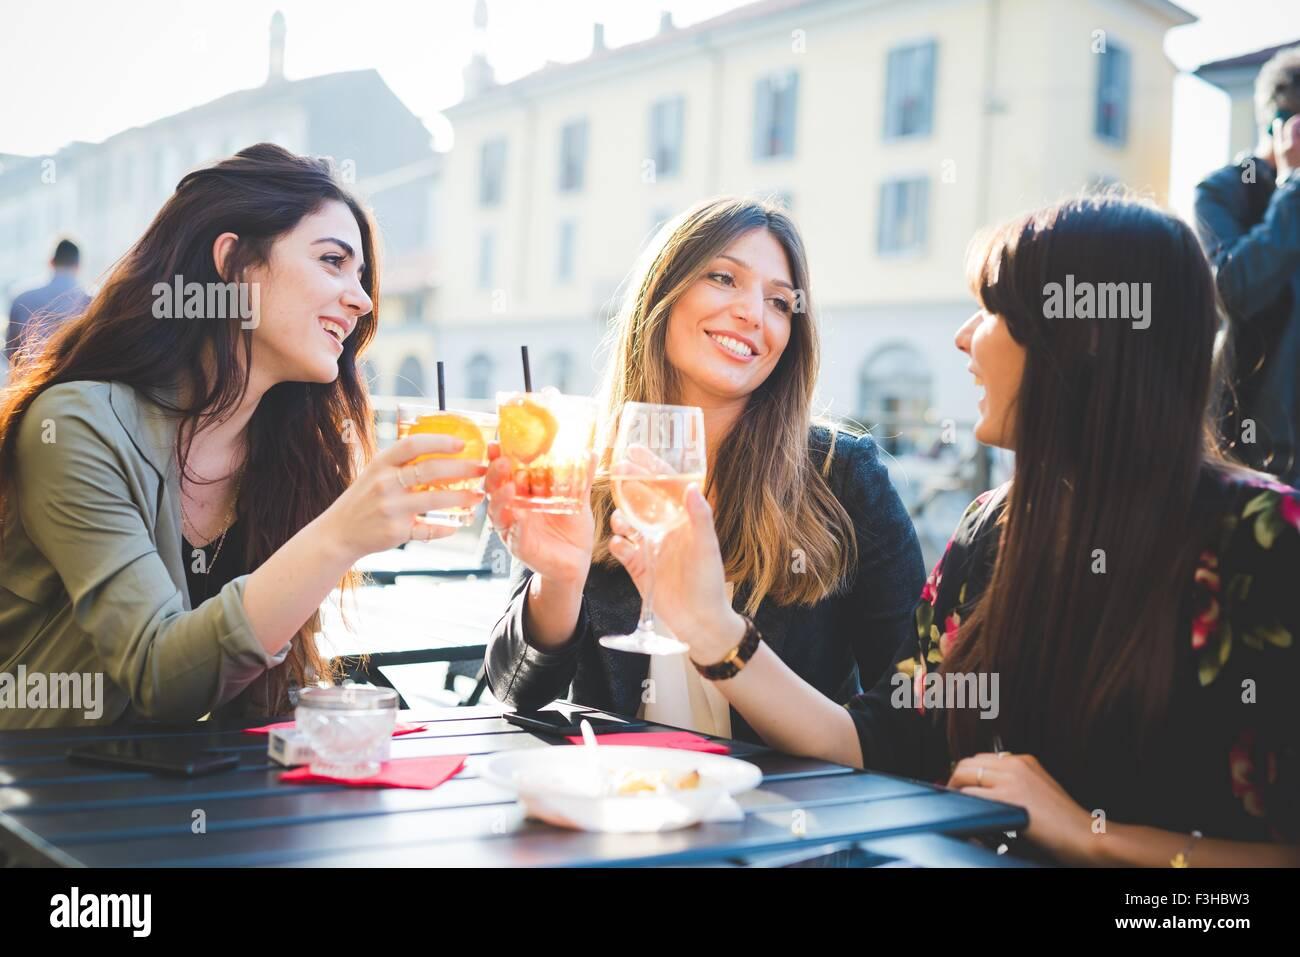 Three young women raising a toast at sidewalk cafe - Stock Image